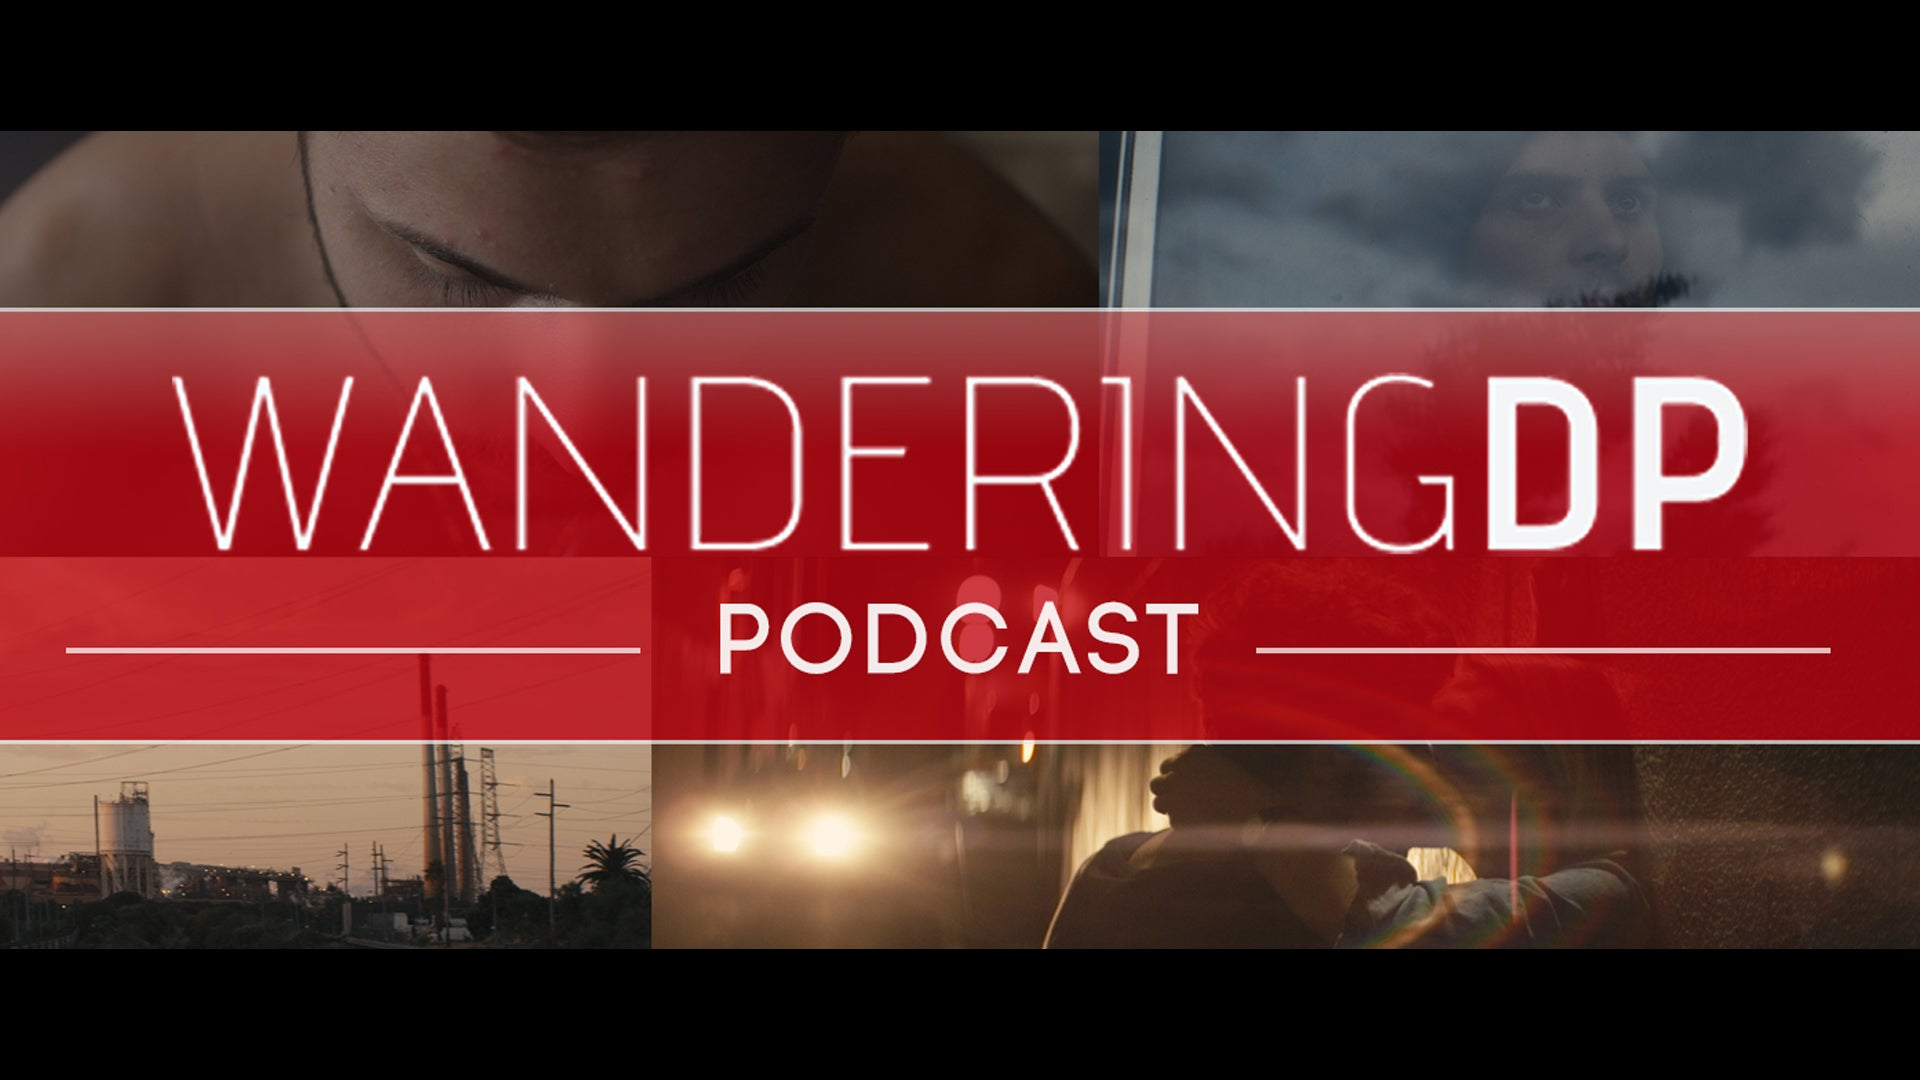 The Wandering DP Podcast: Episodes #41 - #50